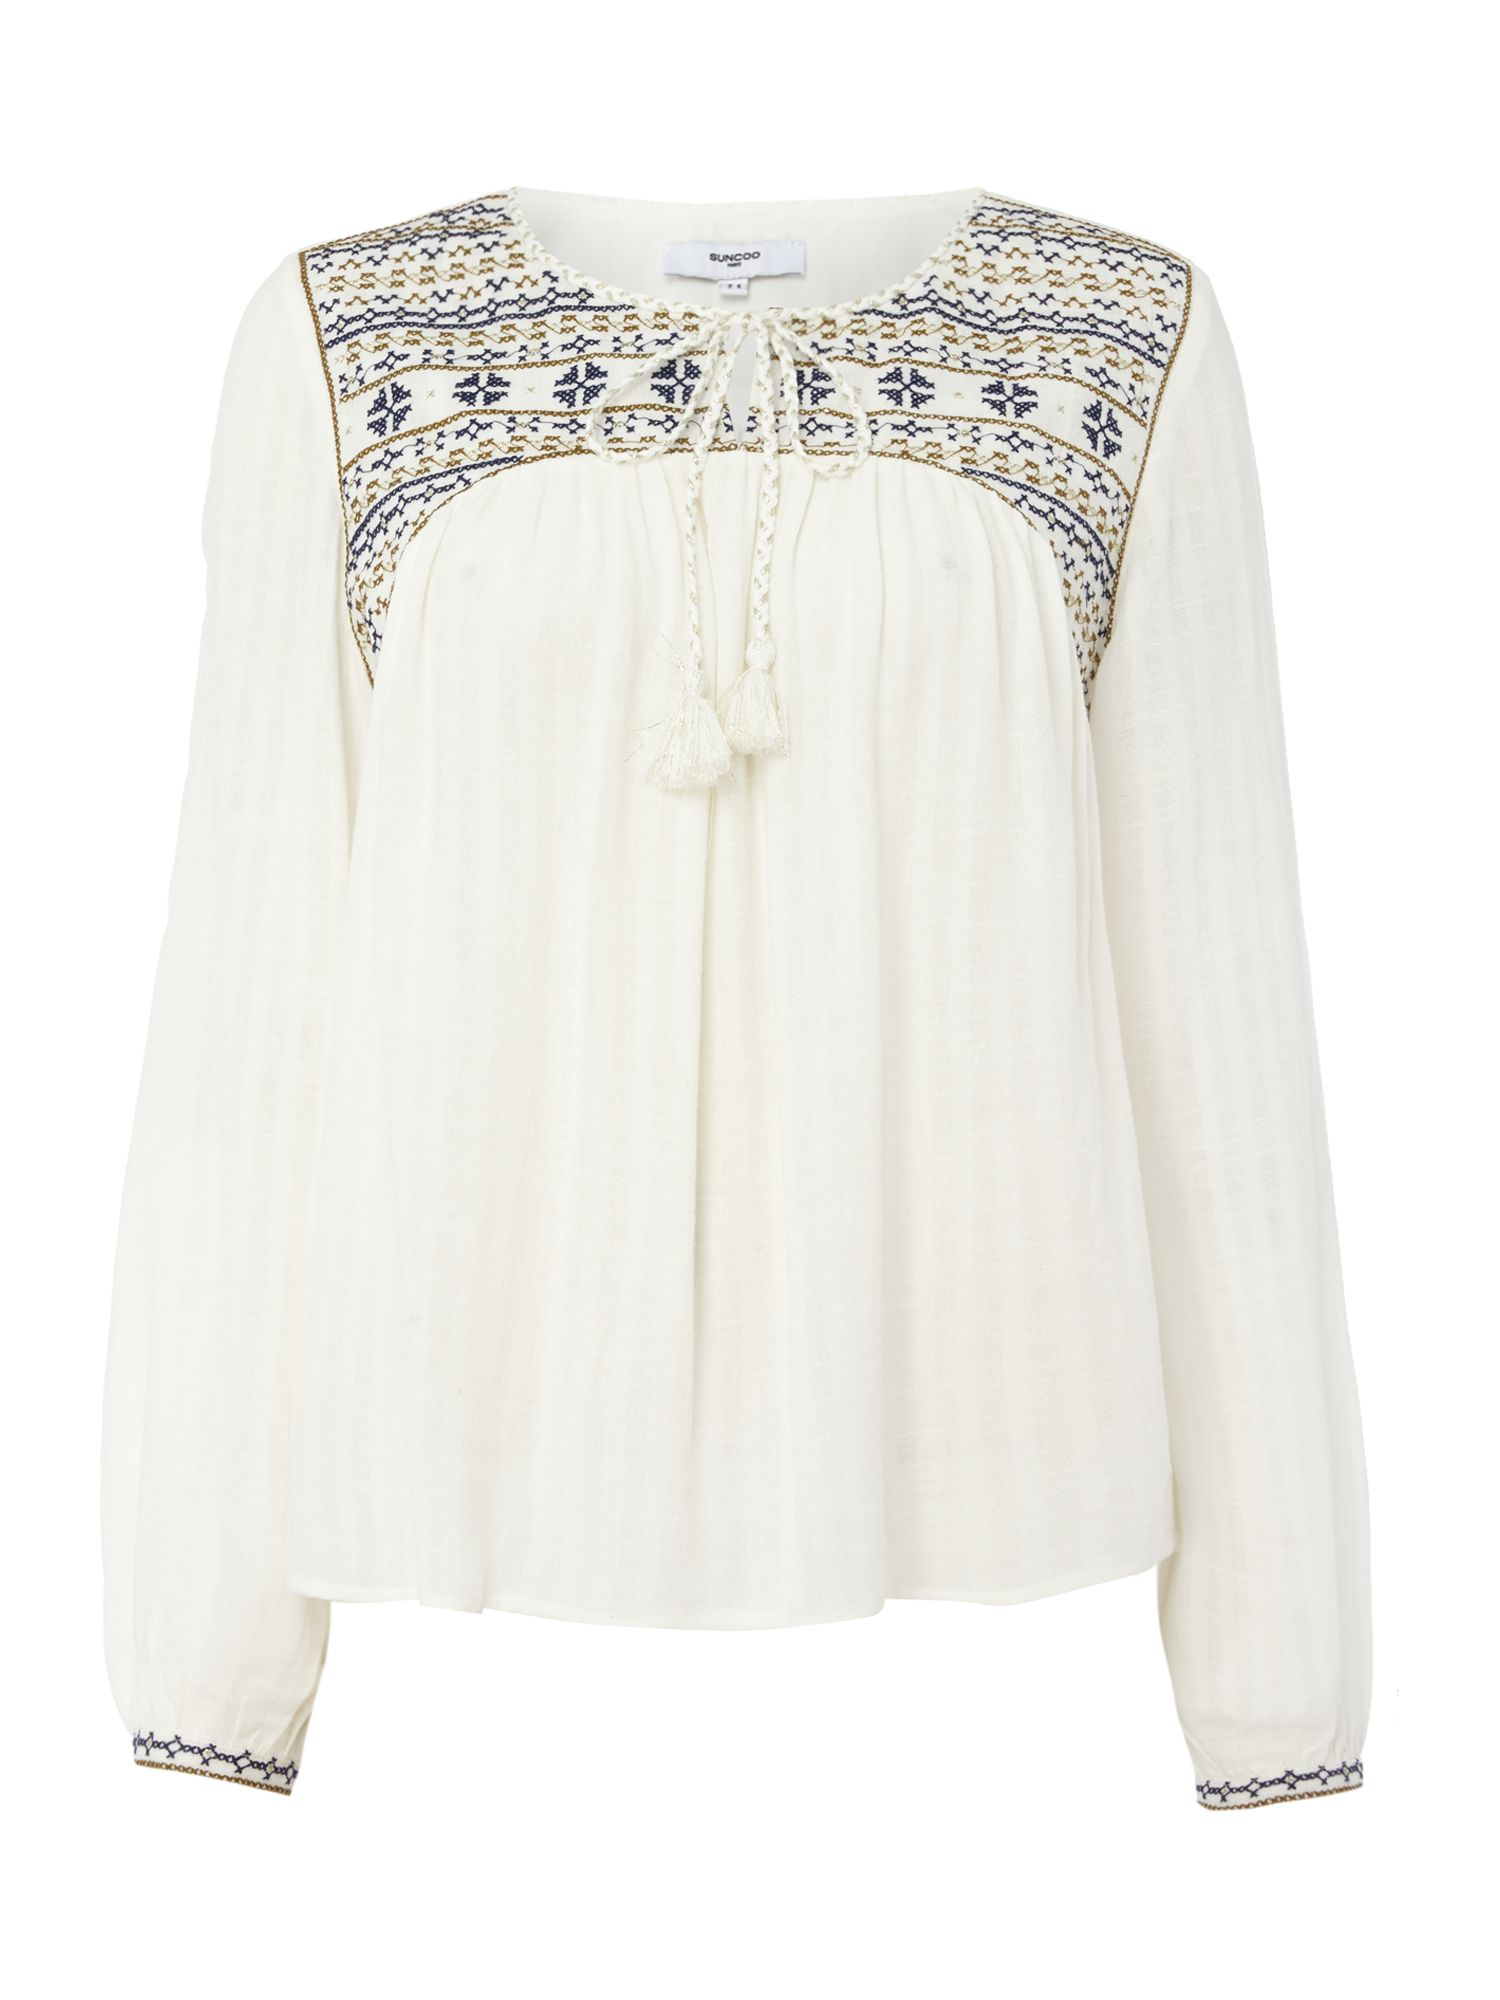 Suncoo Louve Embroidered Blouse, Cream